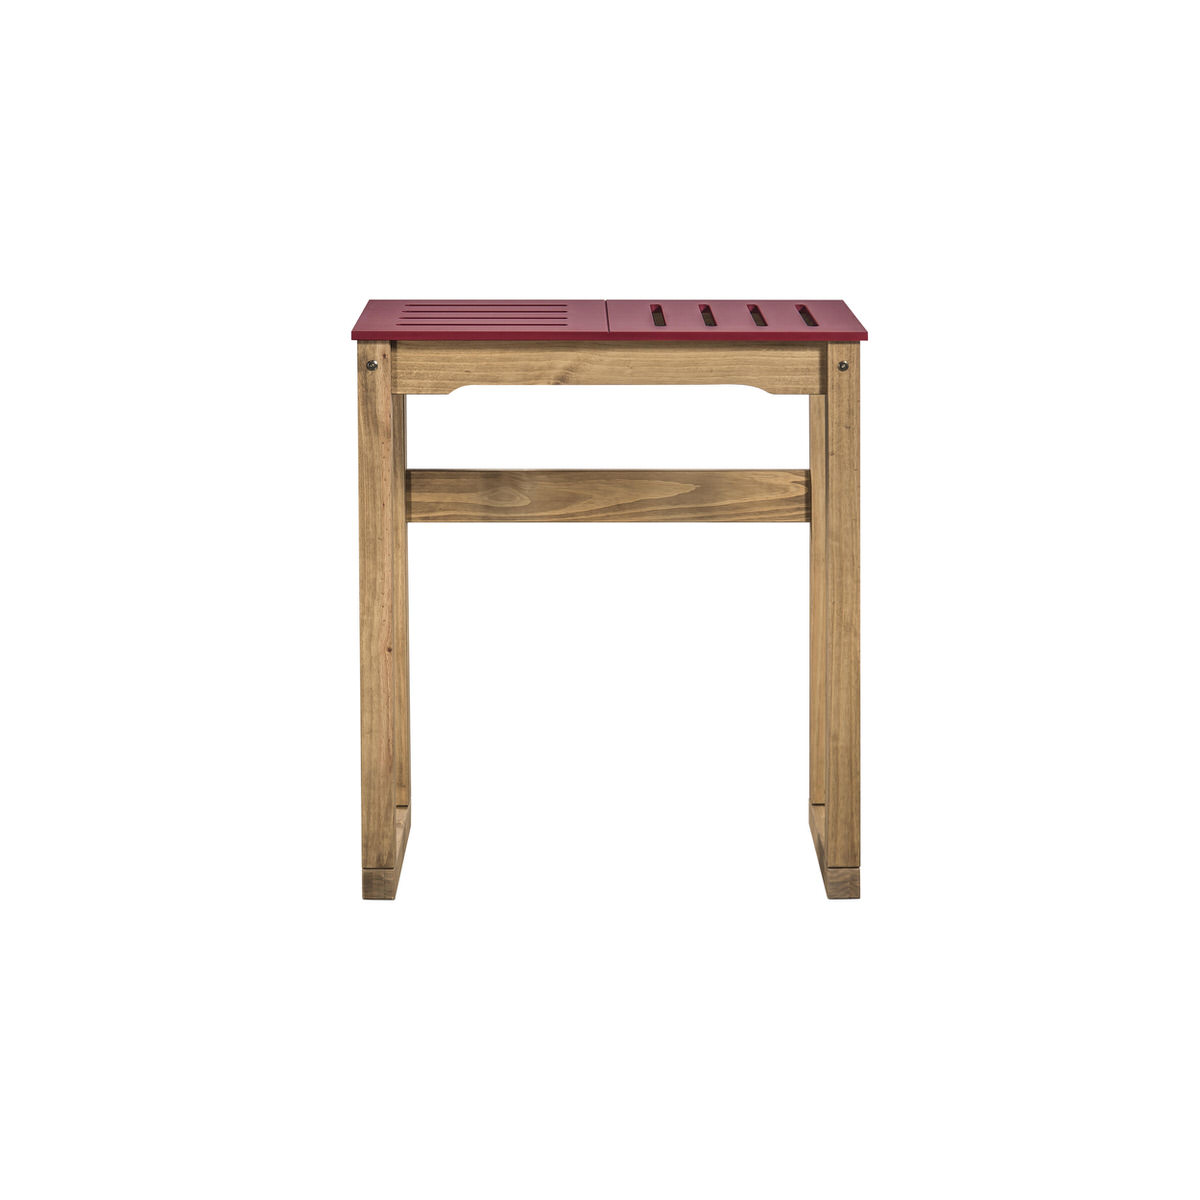 Stillwell mid century modern 31 5 inch red natural wood bar table by manhattan comfort